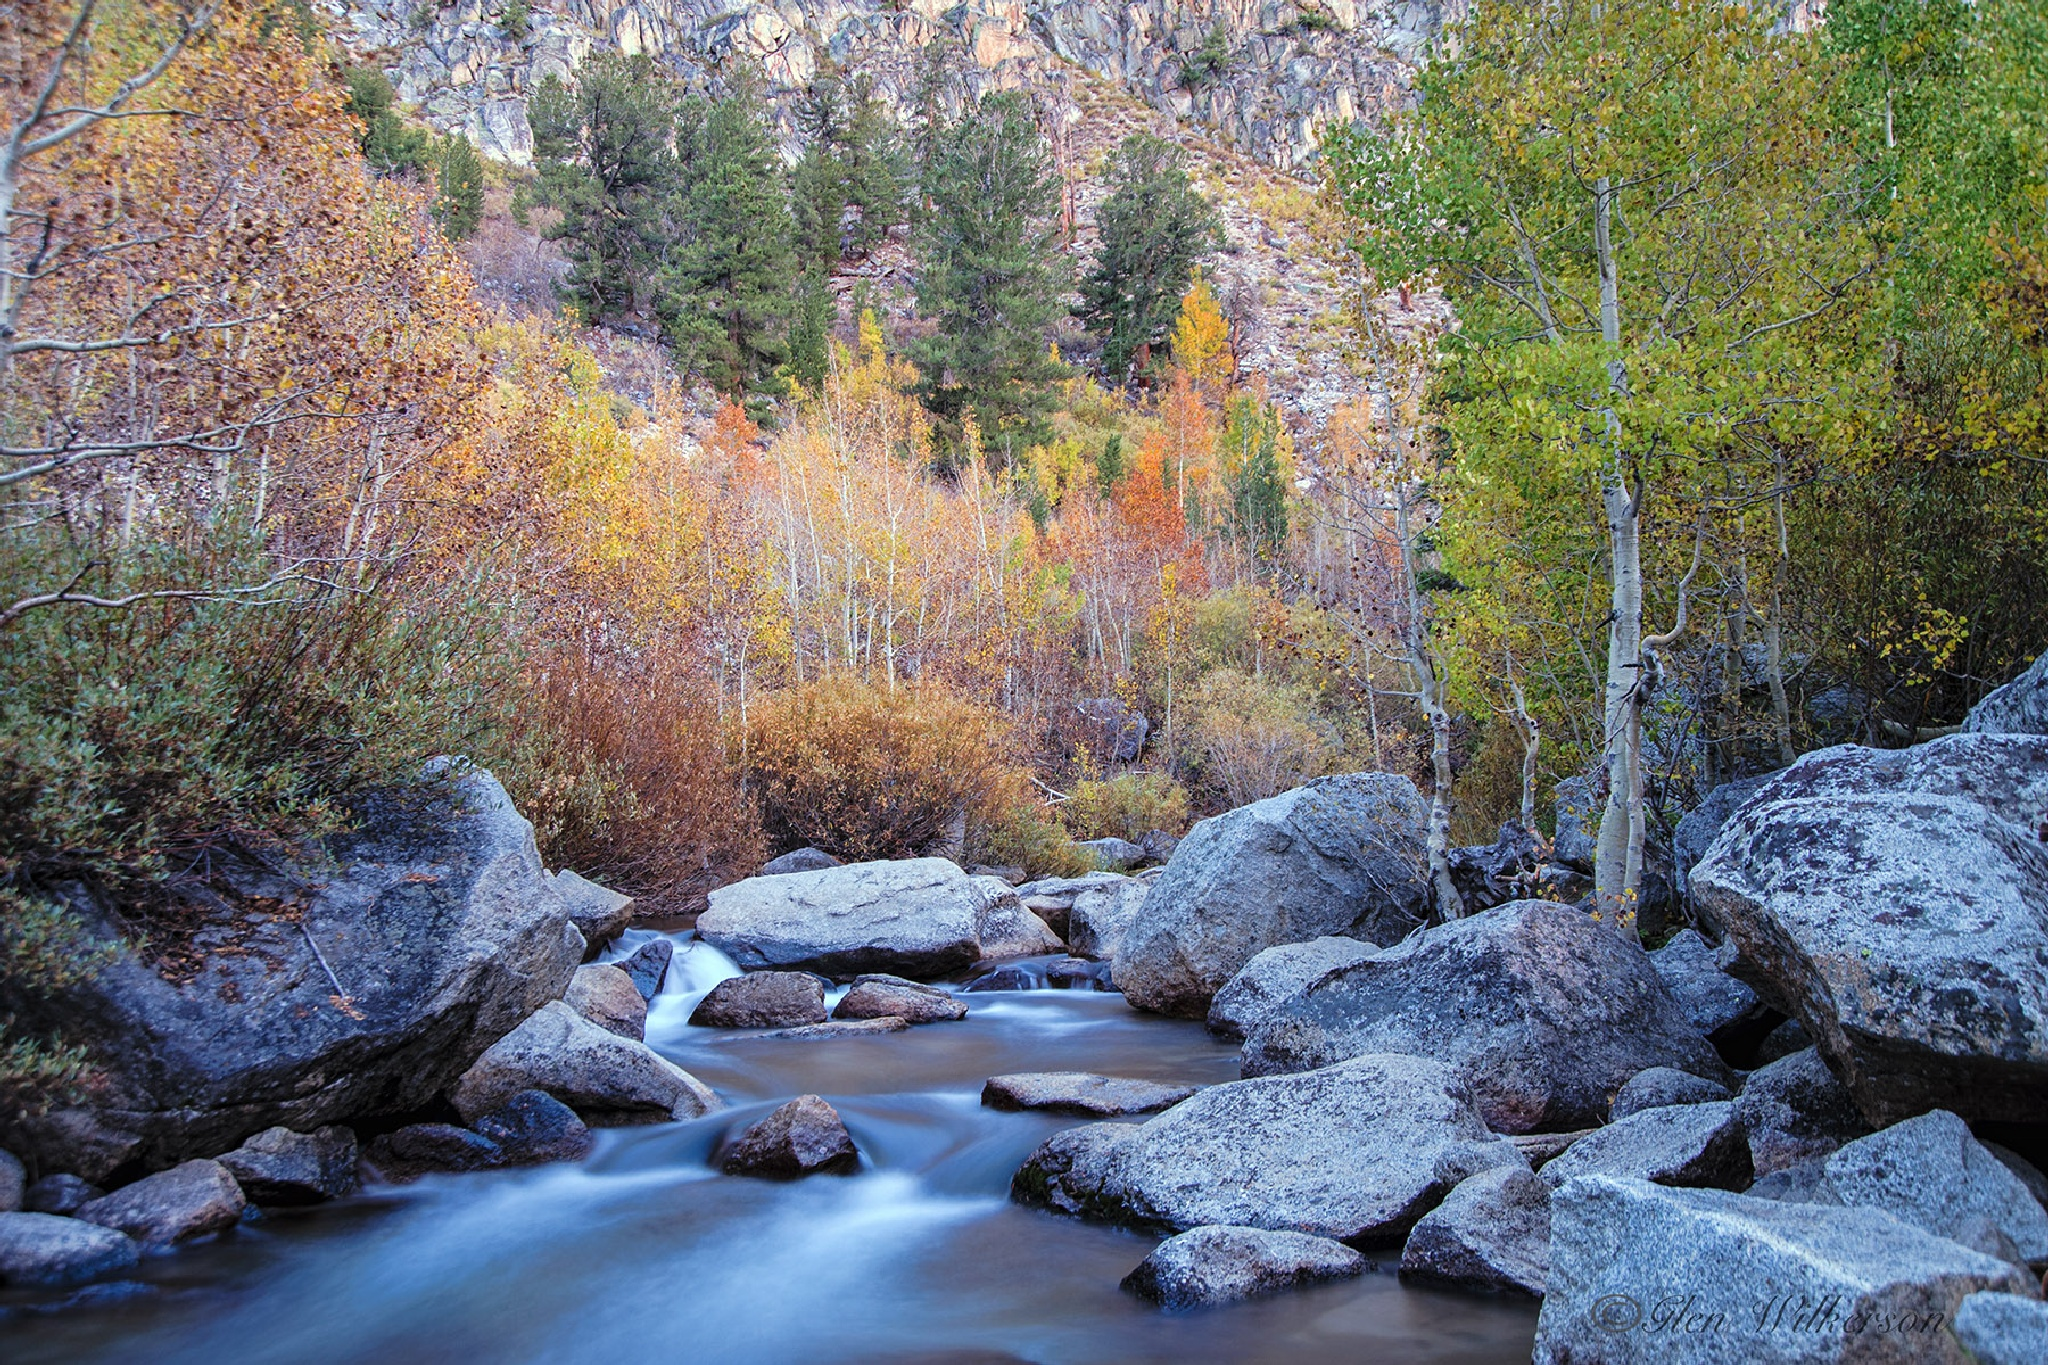 Fall Color at Silver Creek by Glen Wilkerson